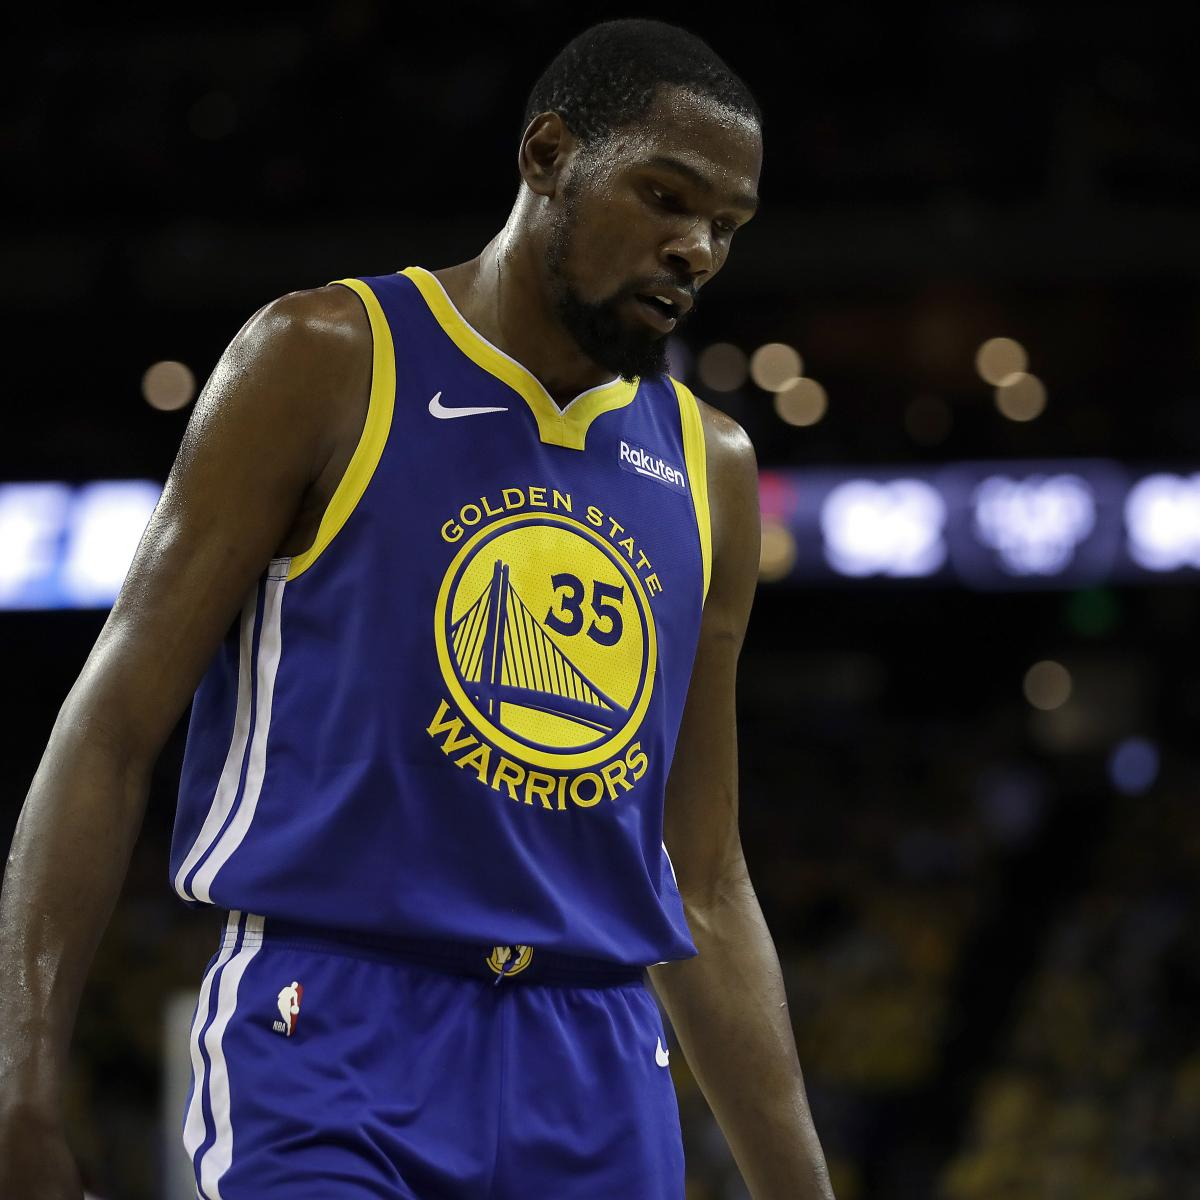 nouveau style 658a6 c14cf Bobby Marks: 3 Teams Said They'd Sign Kevin Durant in Free ...